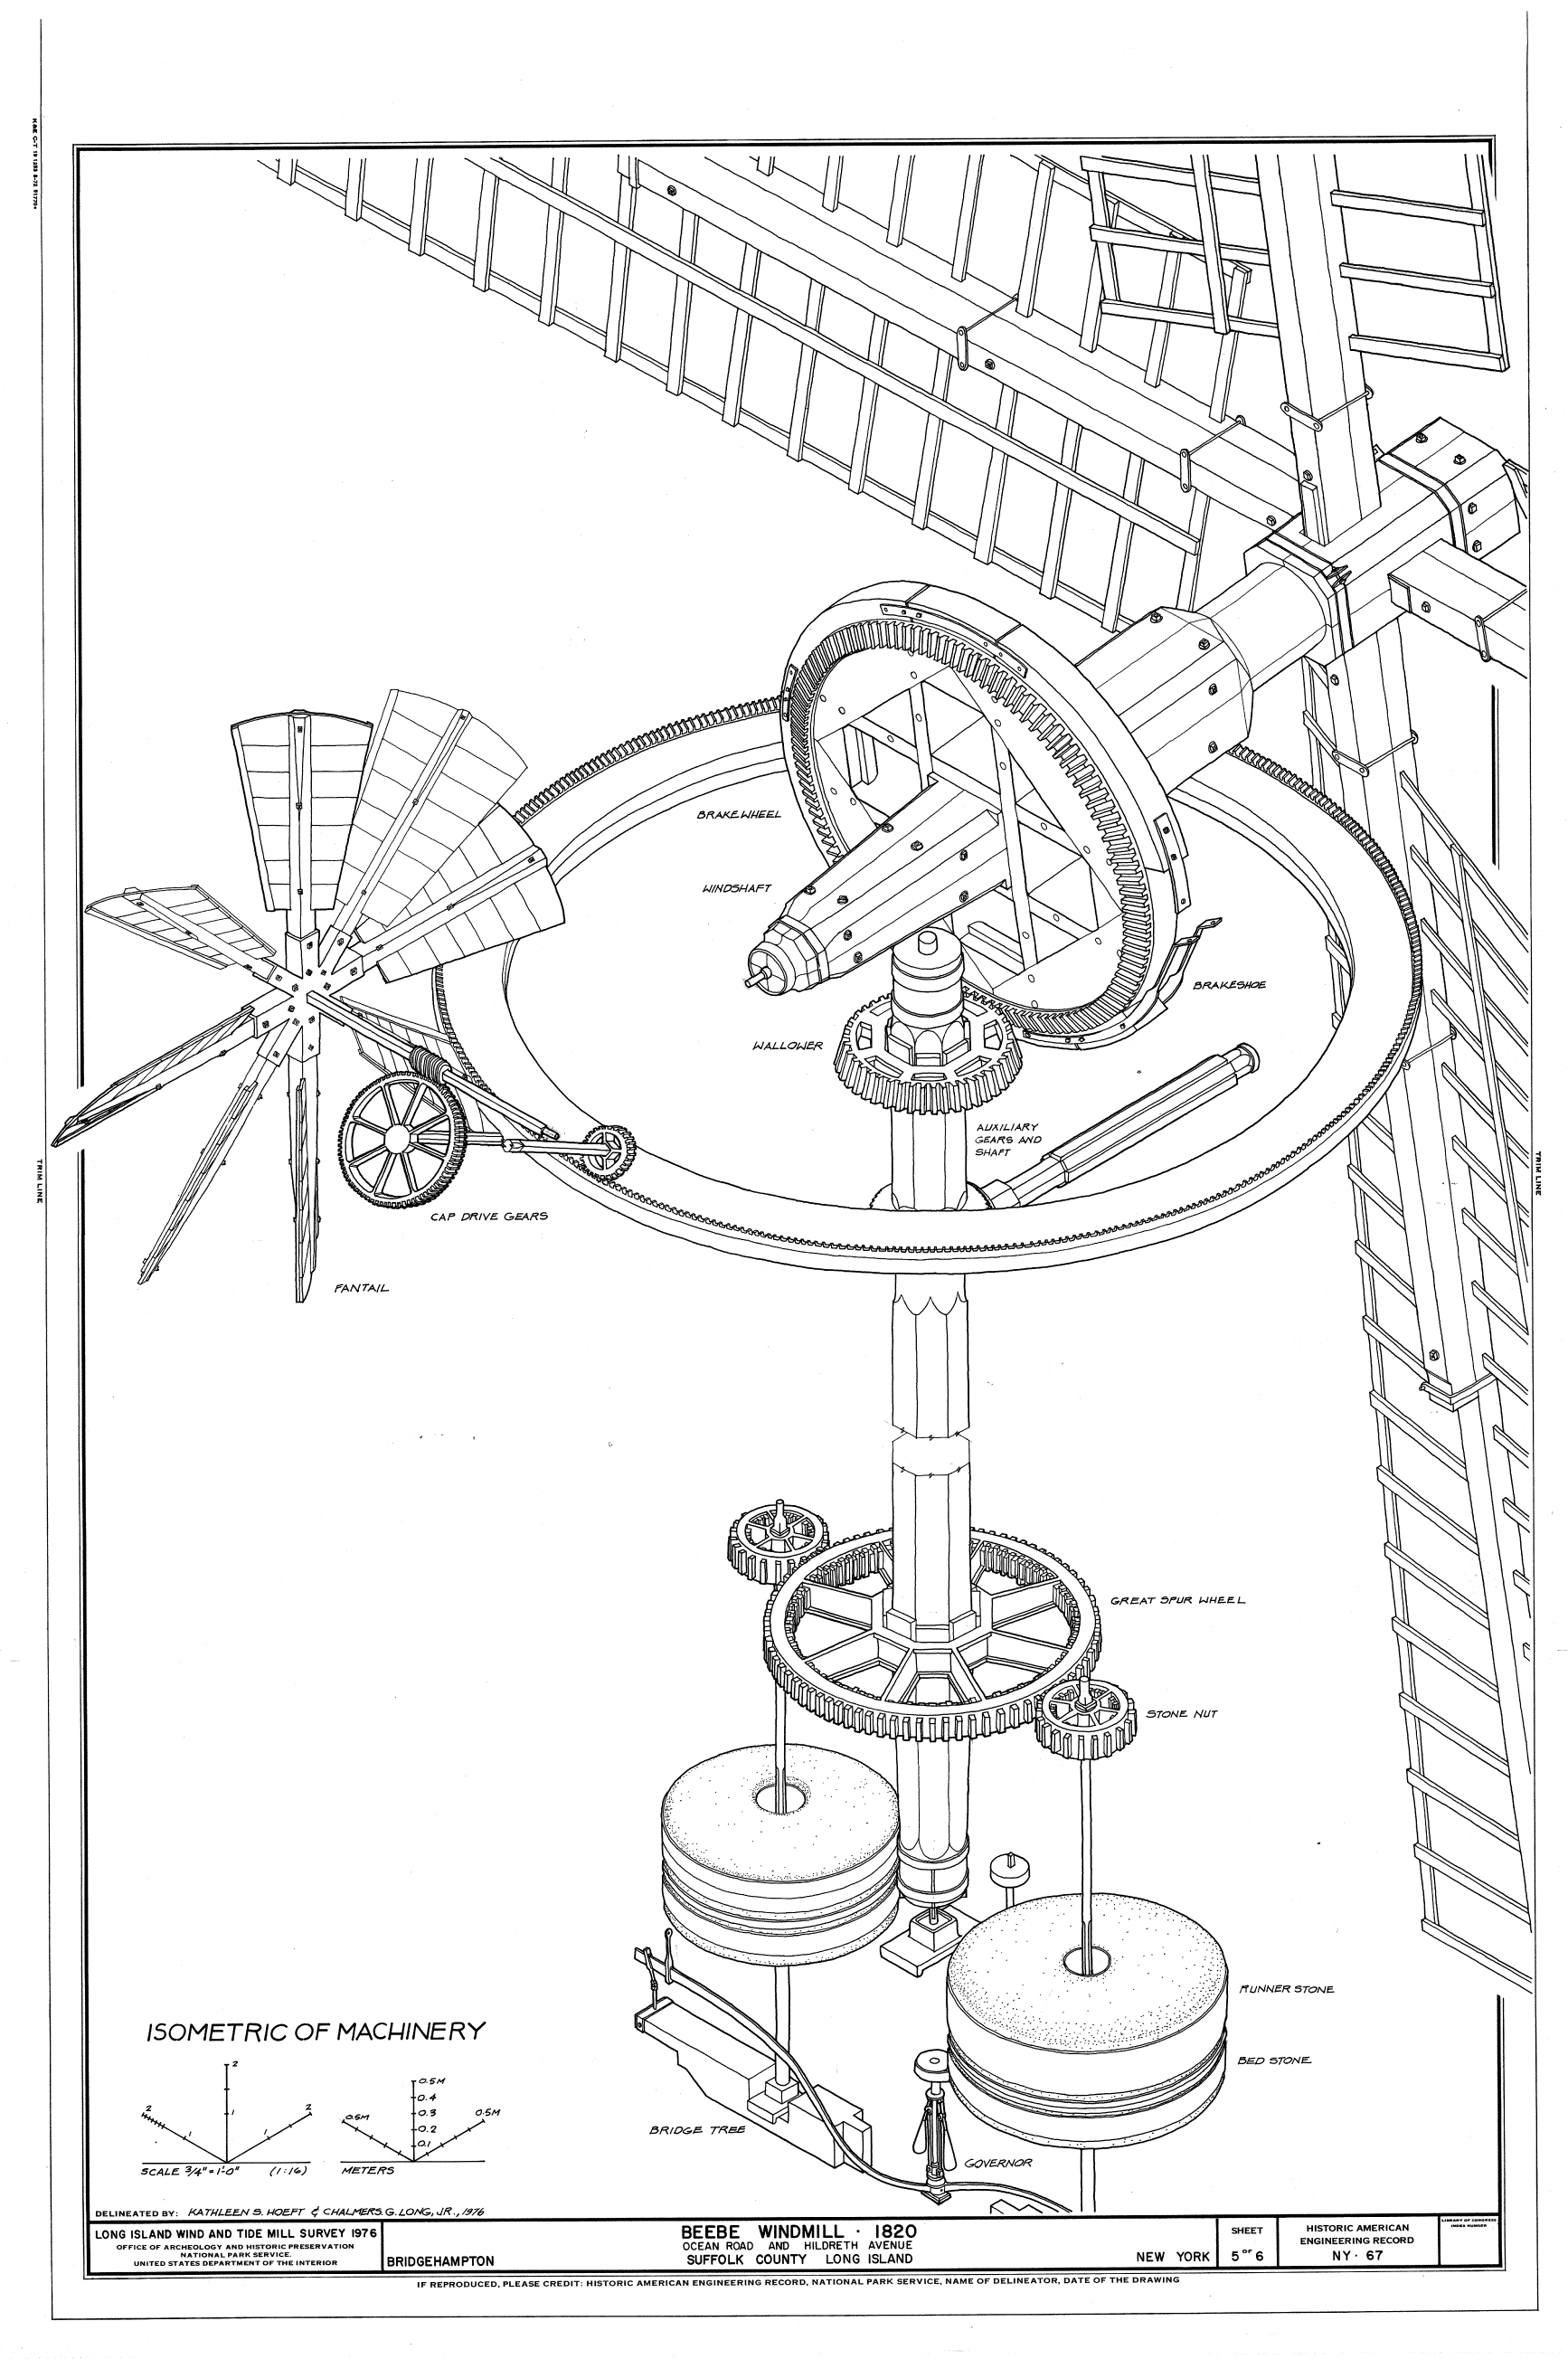 Wind Powered Factories History And Future Of Industrial Windmills Diy Turbine Wiring Diagrams Wingding Fantail Windmill Mechanism Illustration